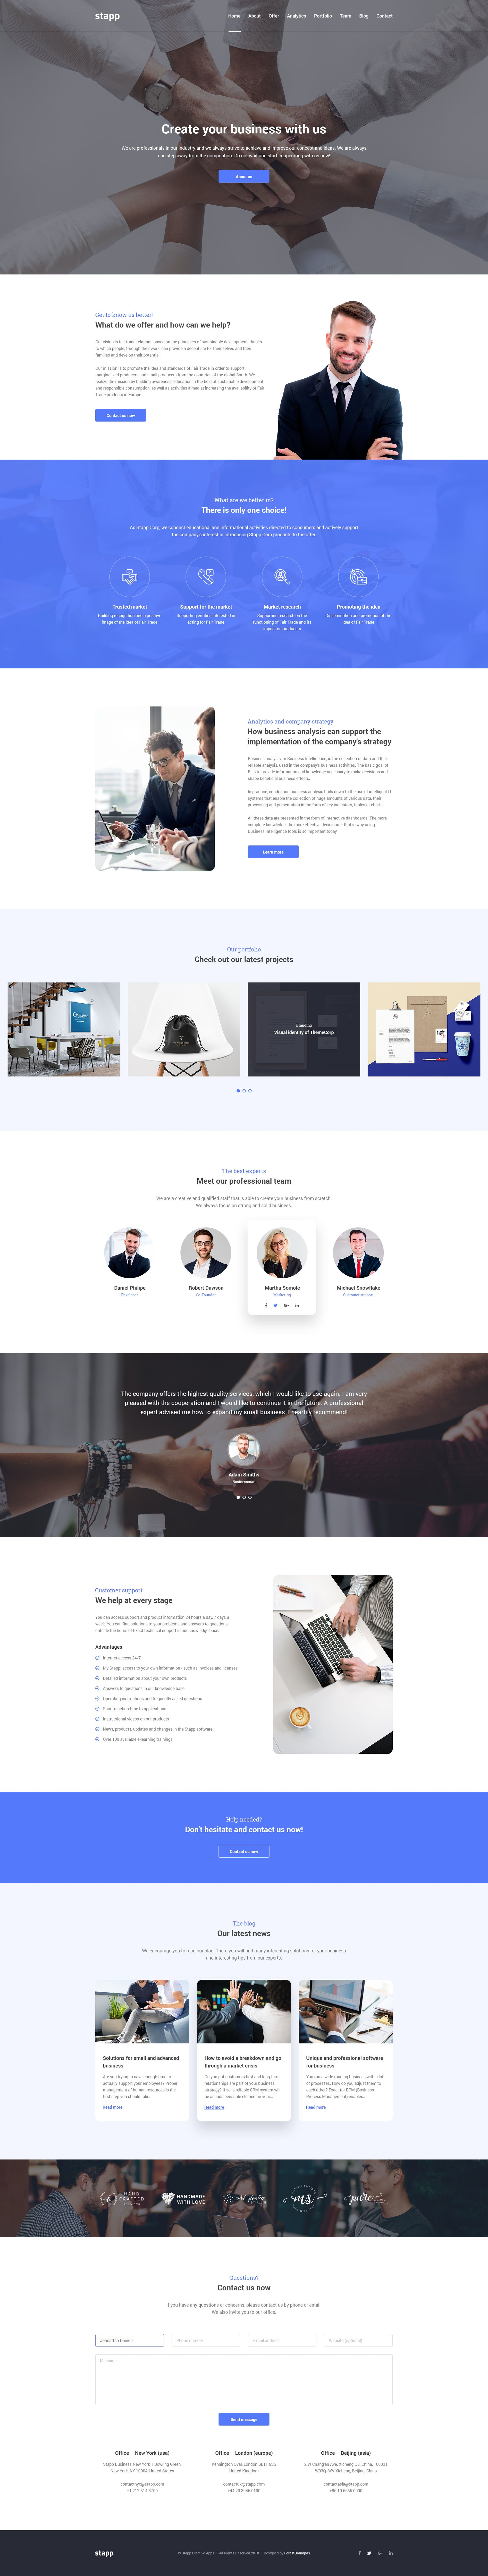 Stapp – Business Multipurpose PSD Template Screenshot 2